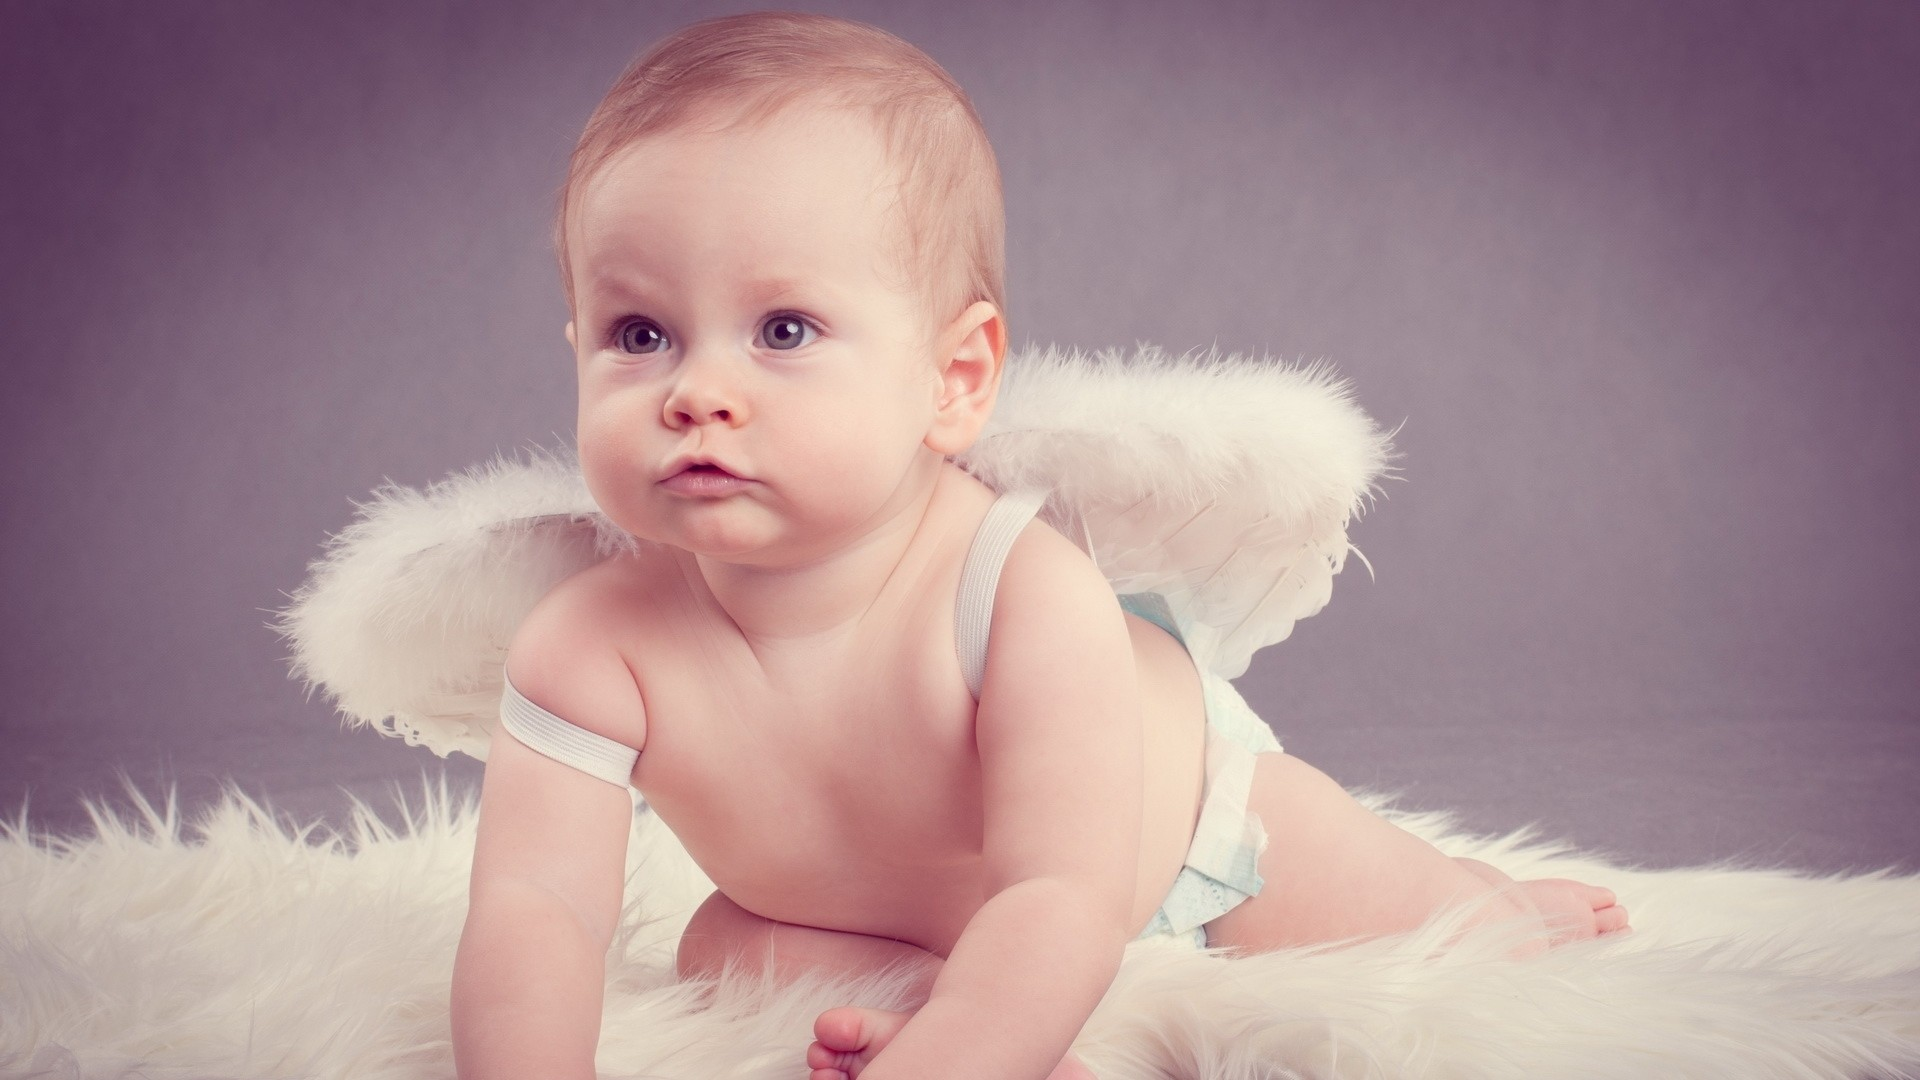 Wallpaper Baby Angels (50+ images)